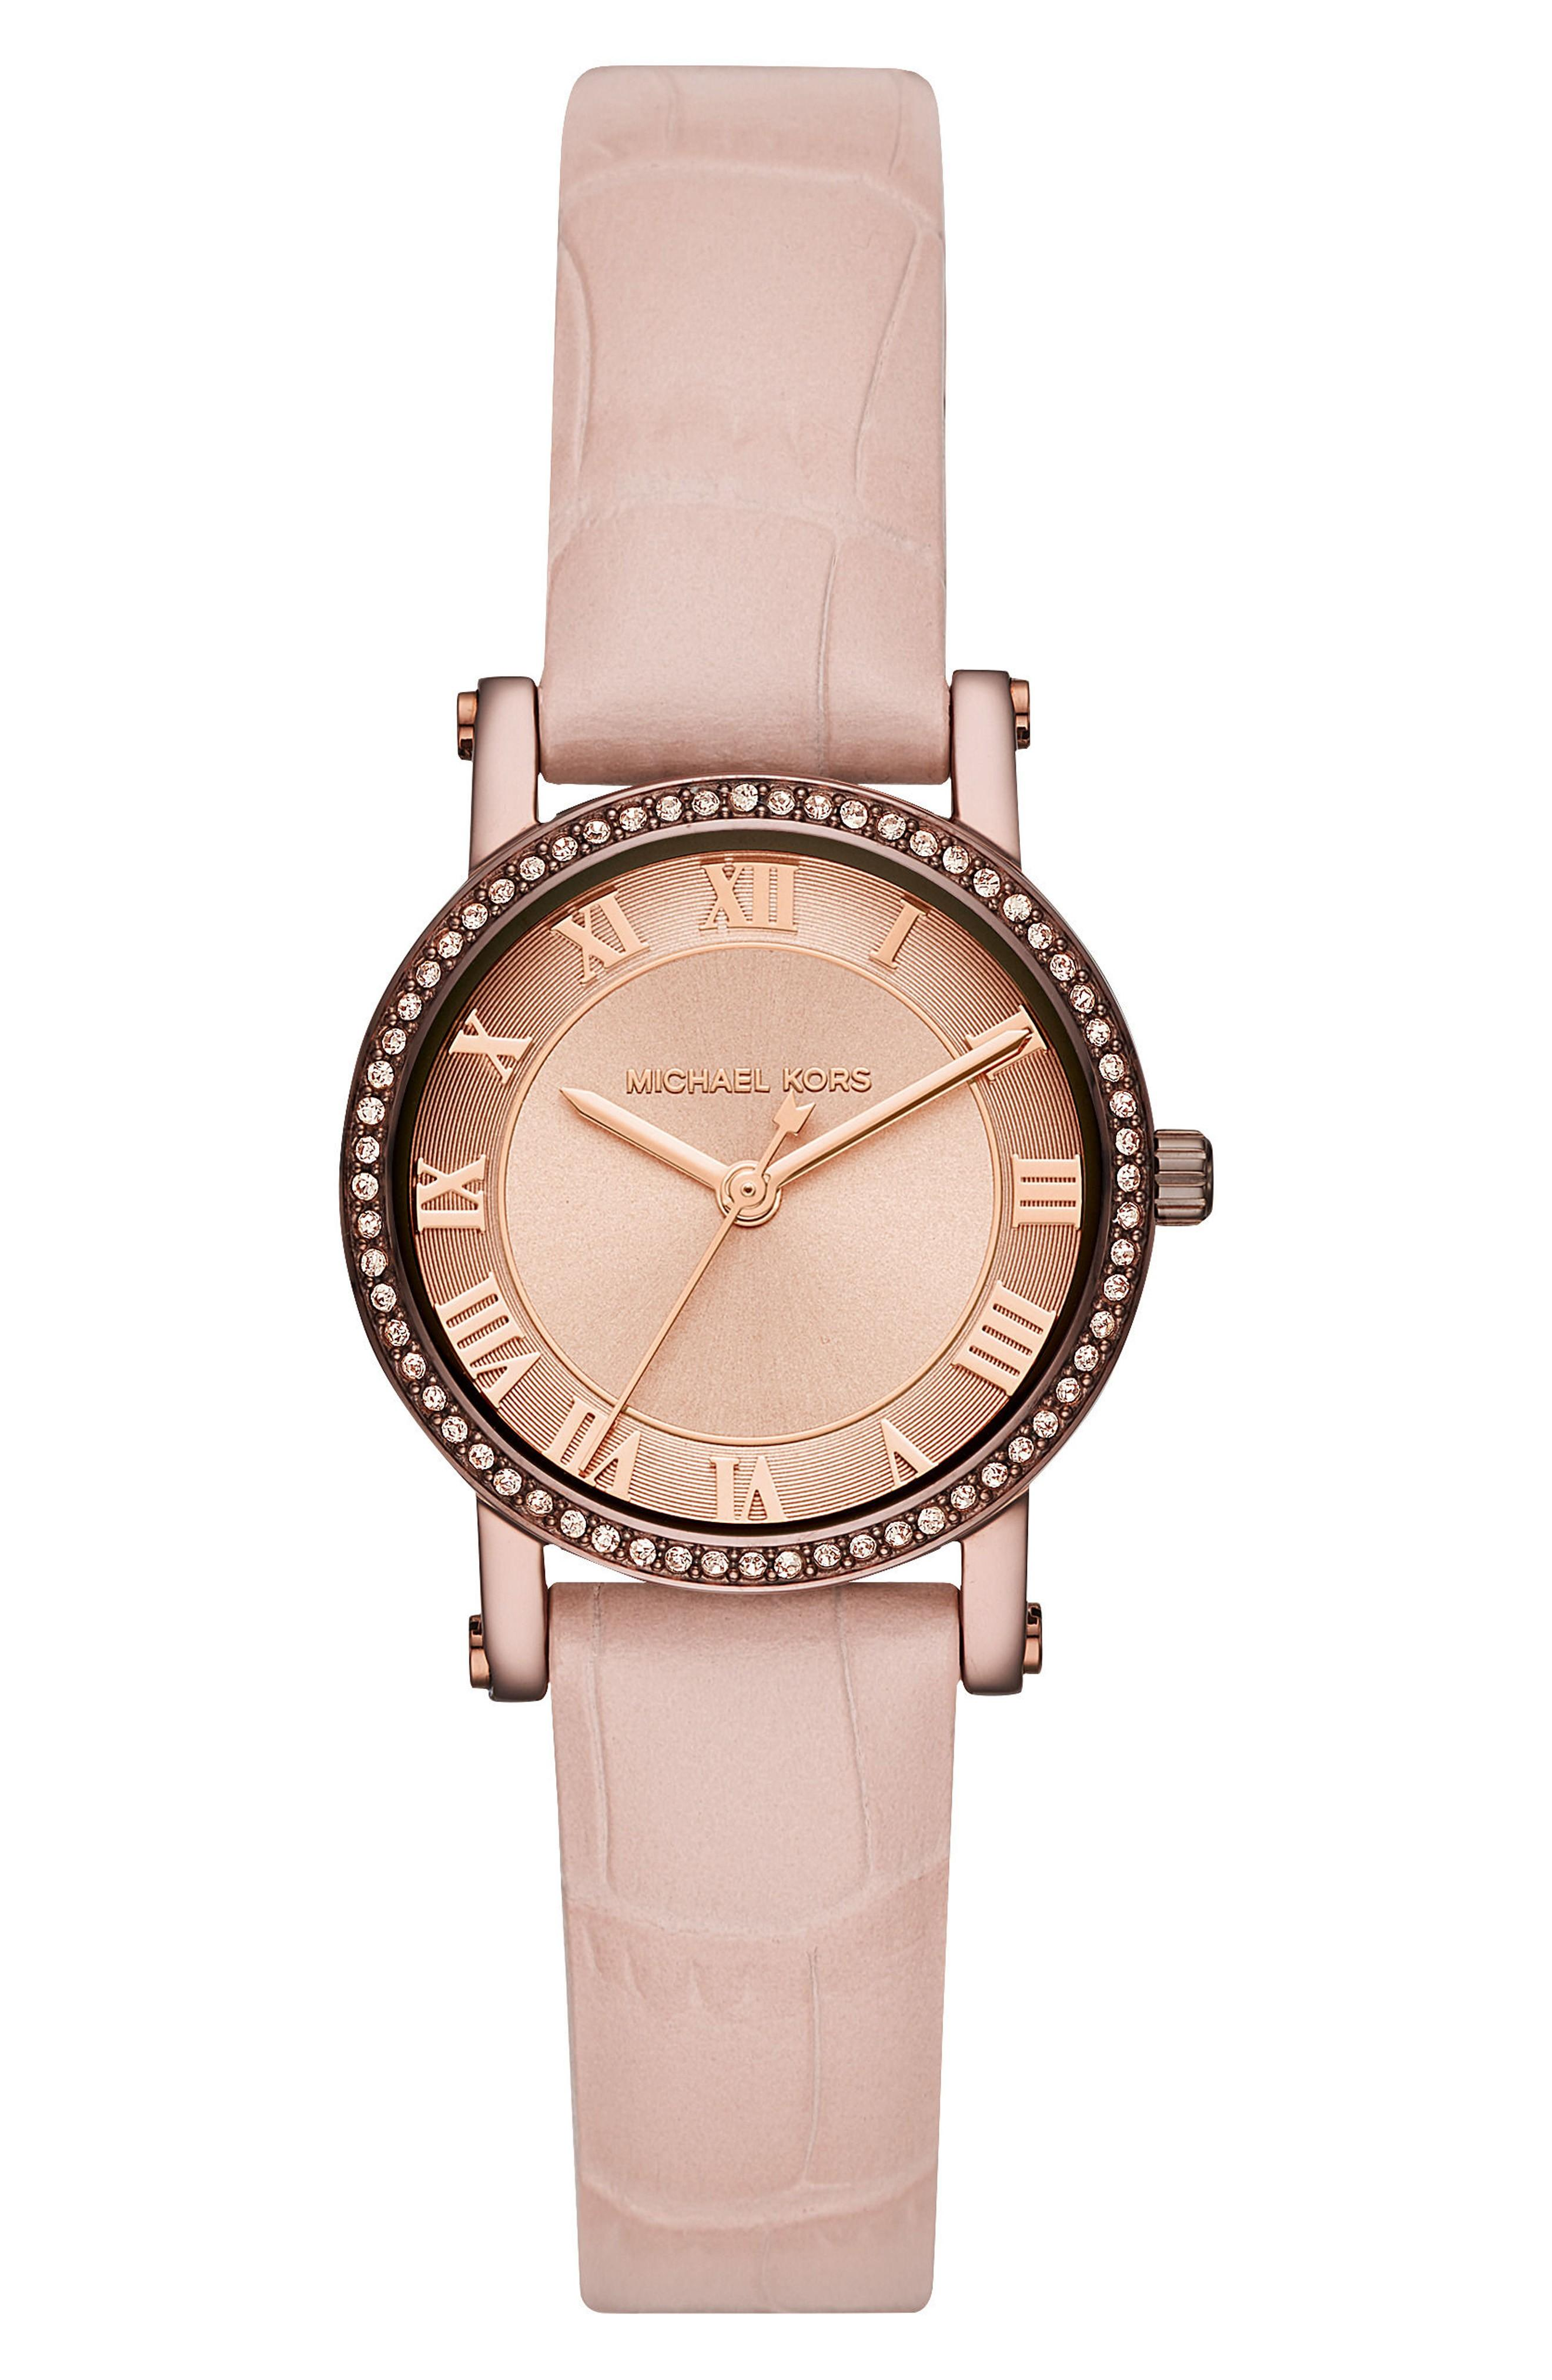 Michael Kors Norie Crystal Leather Strap Watch, 28mm In Pink/ Rose Gold/ Brown